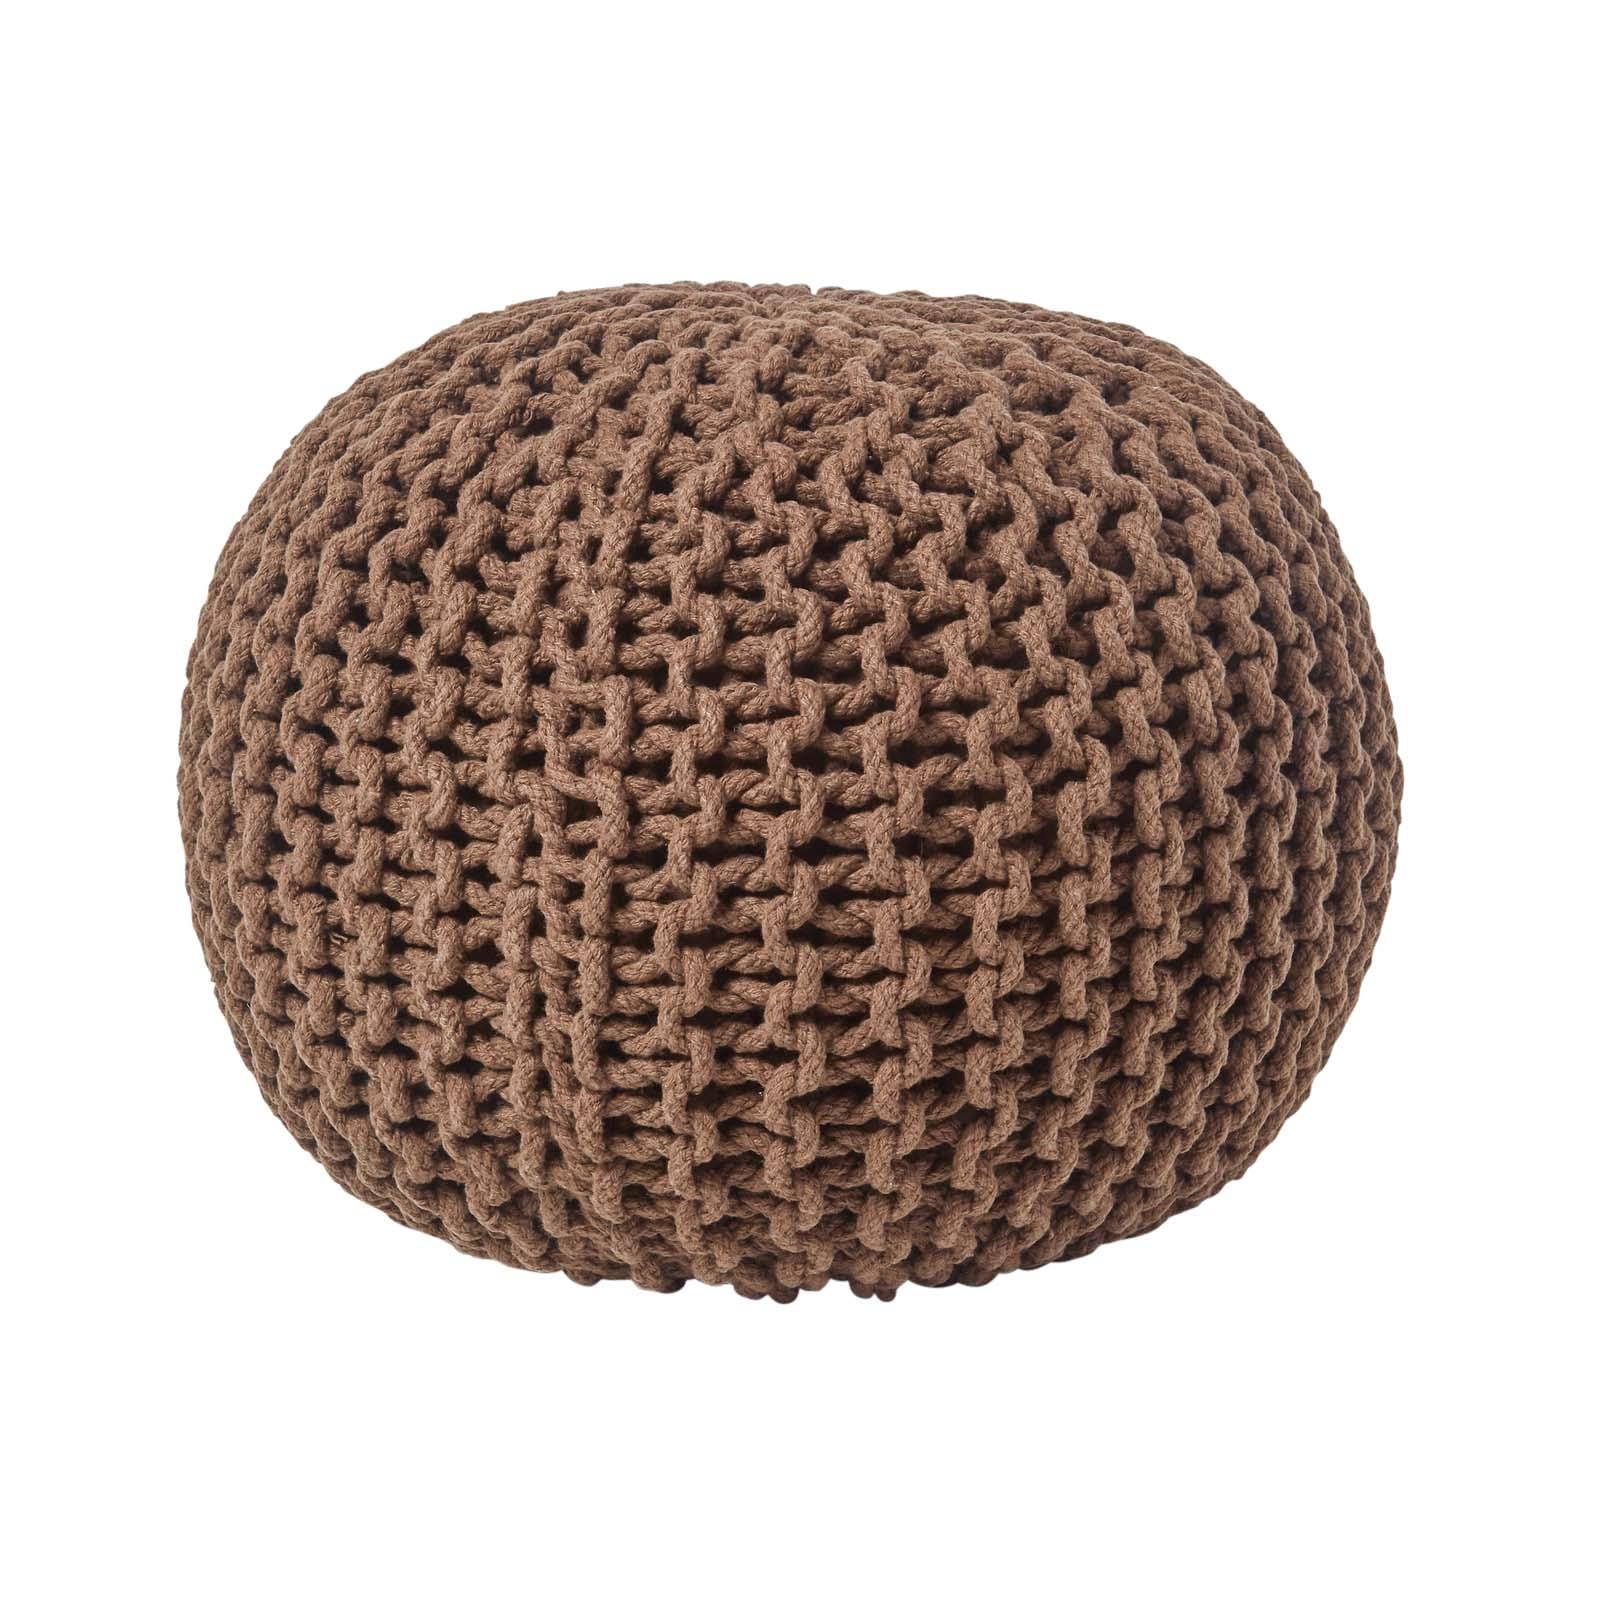 Hand-Knitted-100-Cotton-Pouffes-Round-Sphere-Or-Cube-Square-Chunky-Footstools thumbnail 28